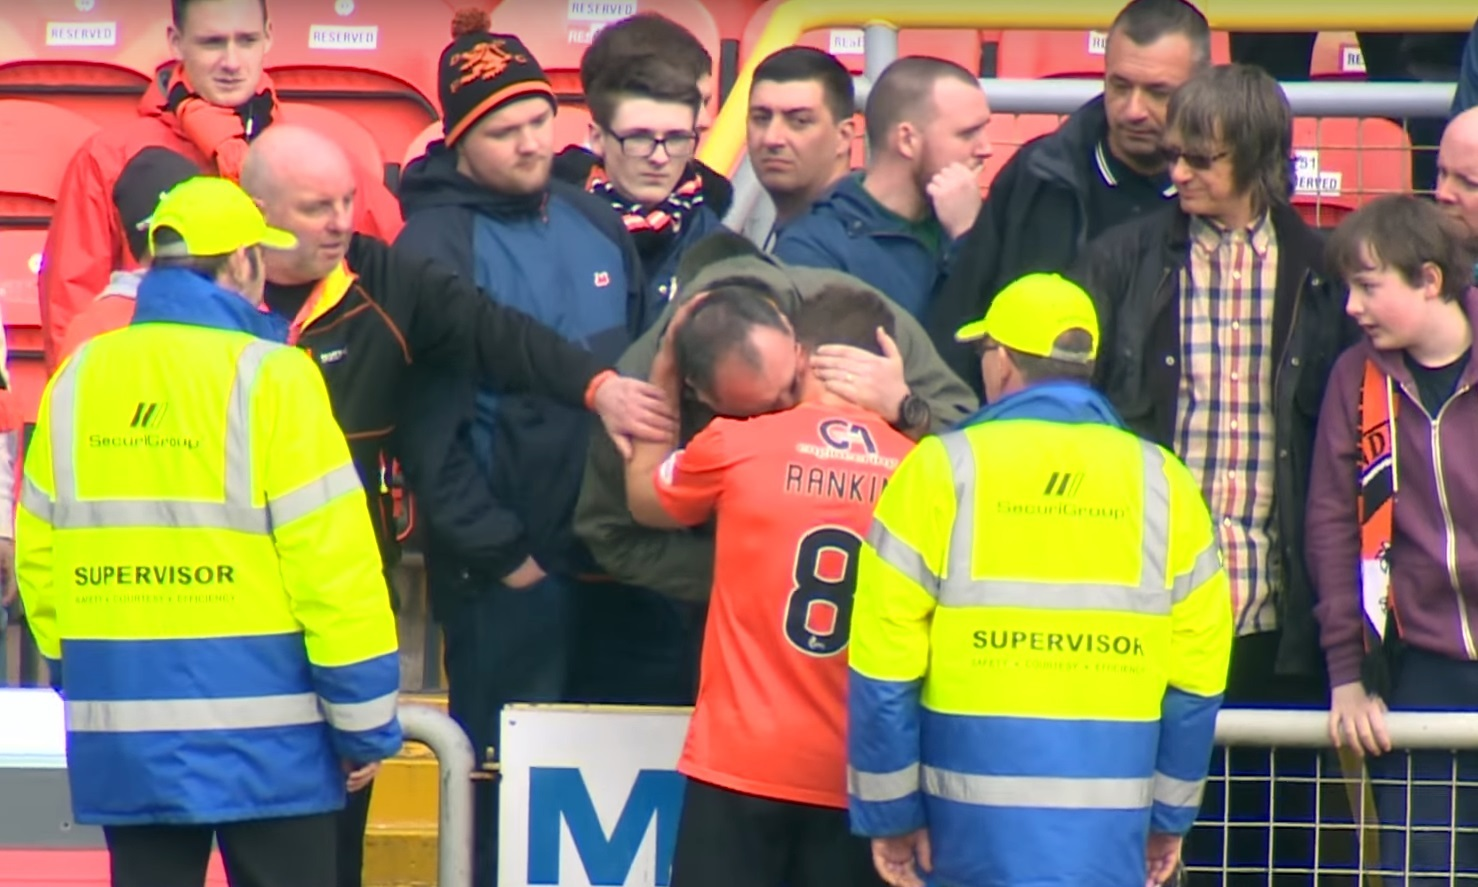 John Rankin being consoled by a fan after the defeat to Hamilton.